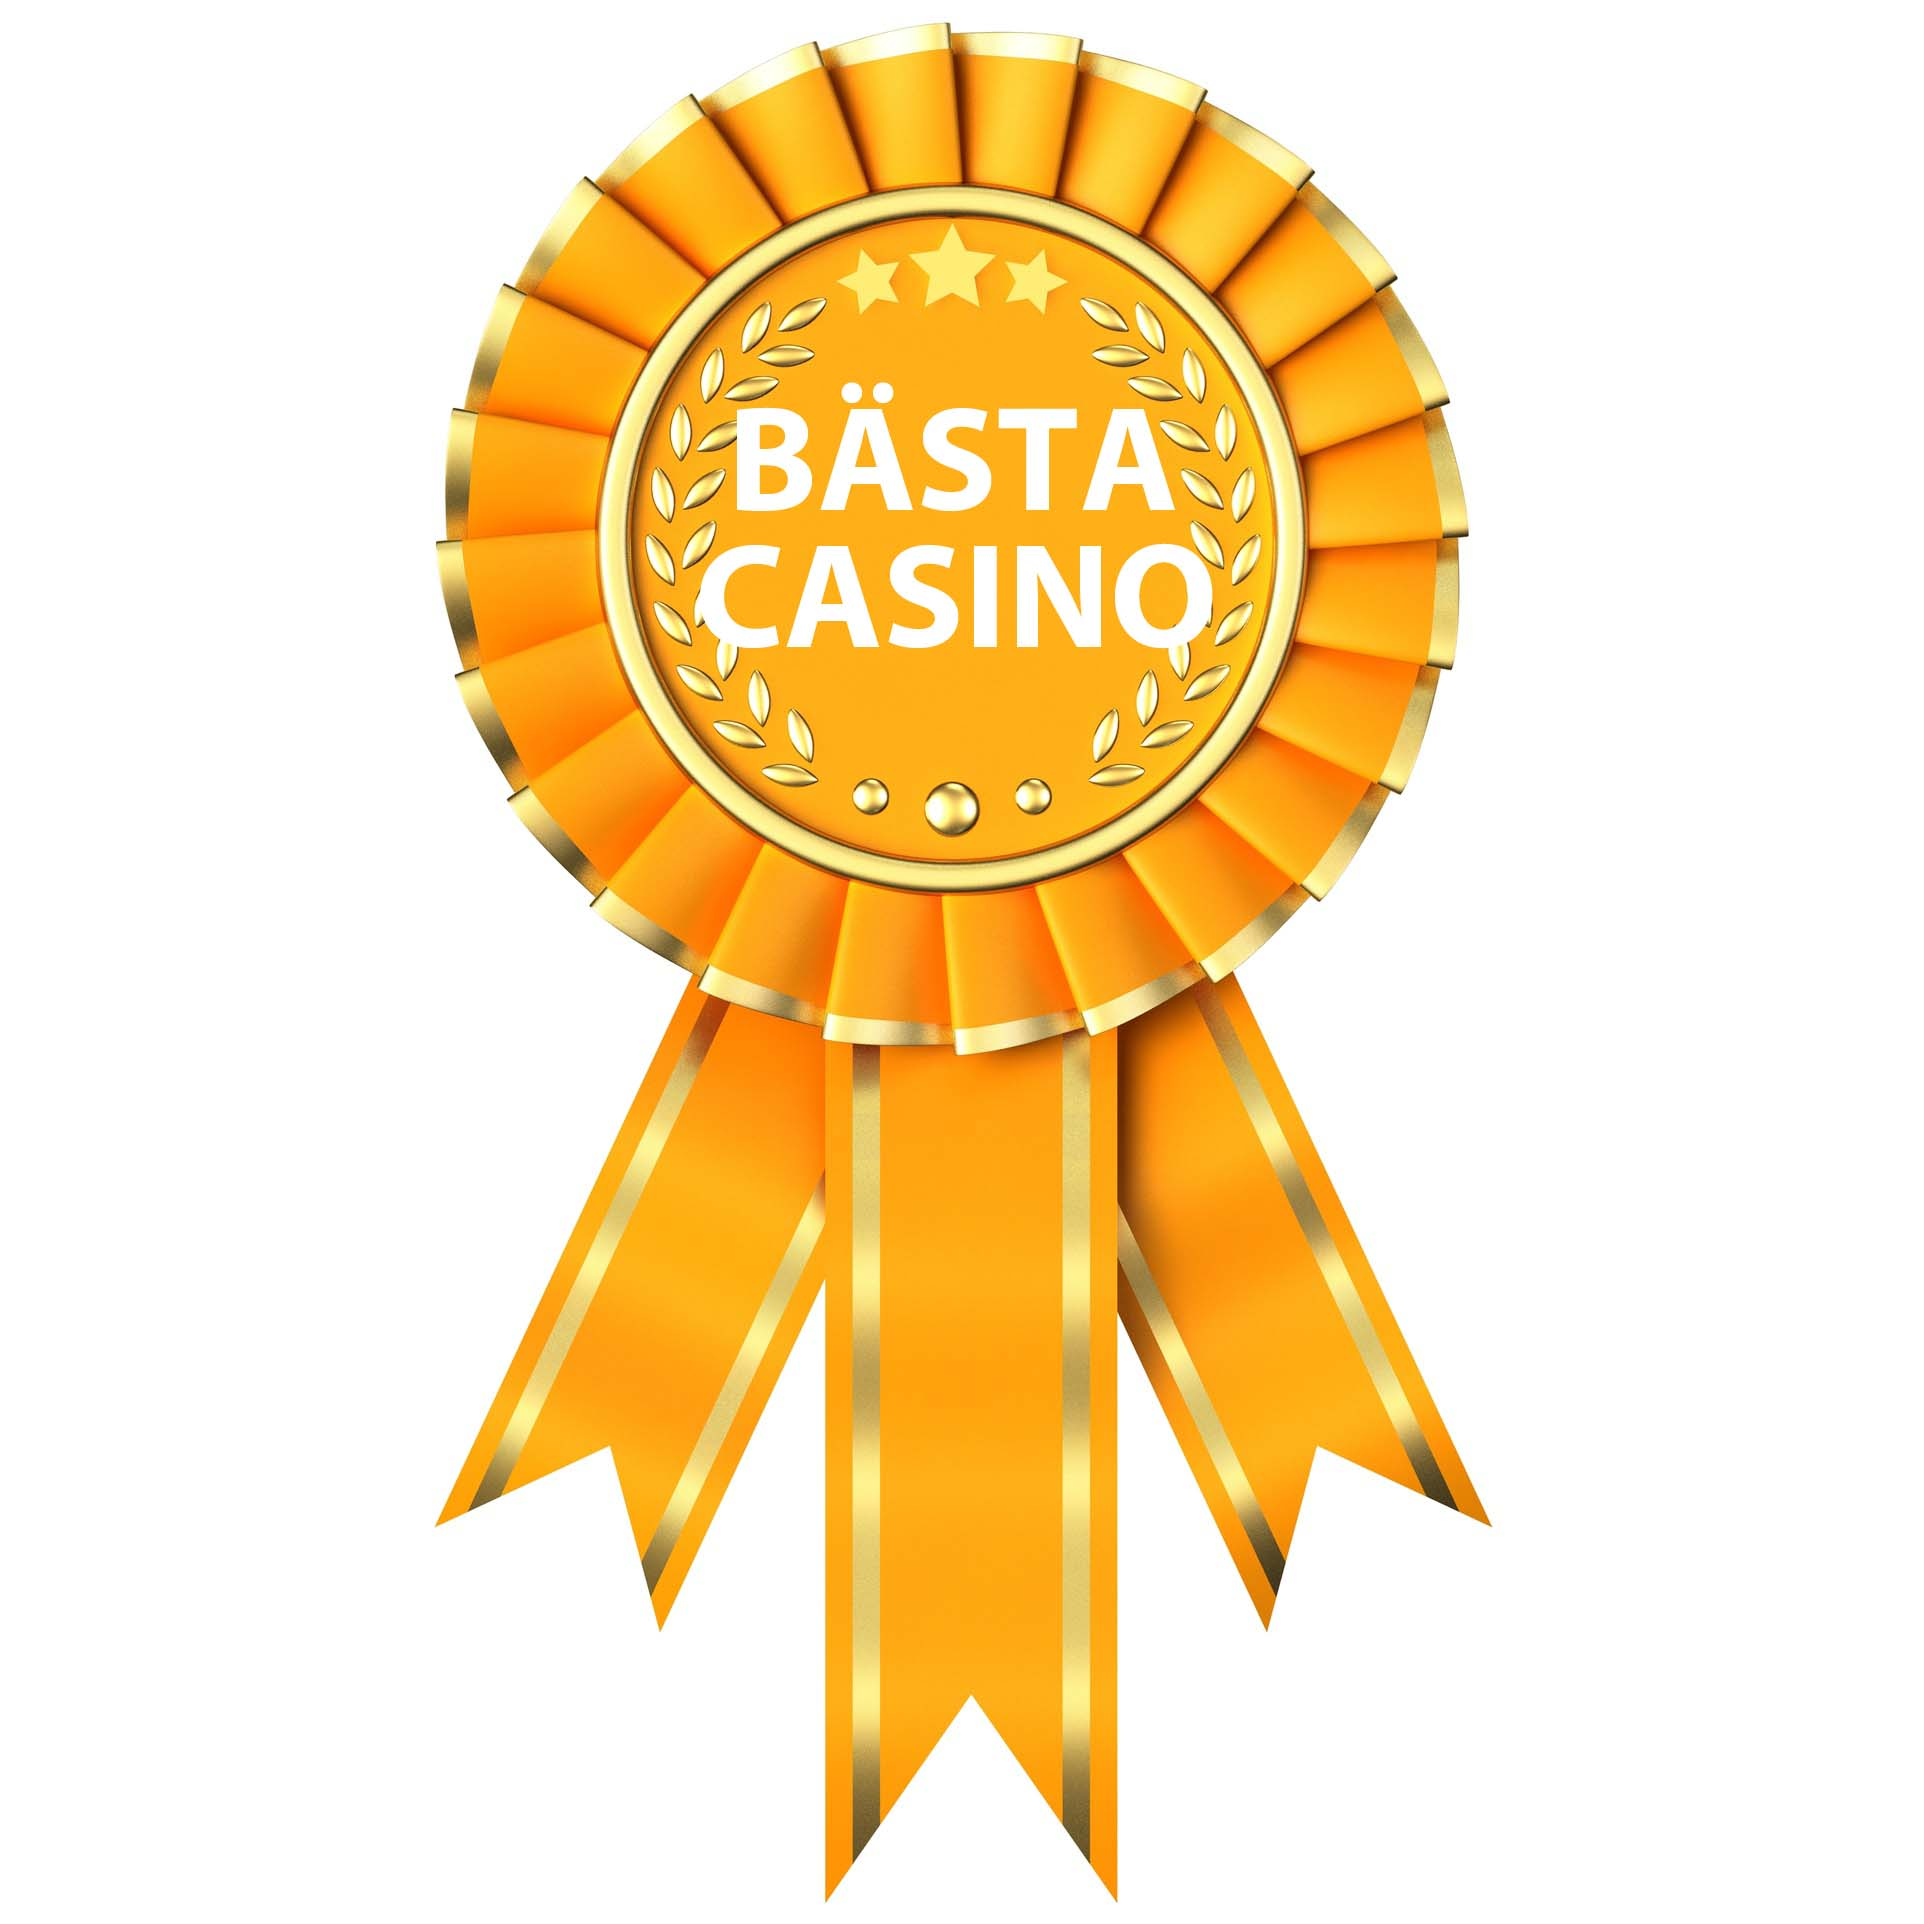 Bästa online casinon - Tips på svenska topp casinon